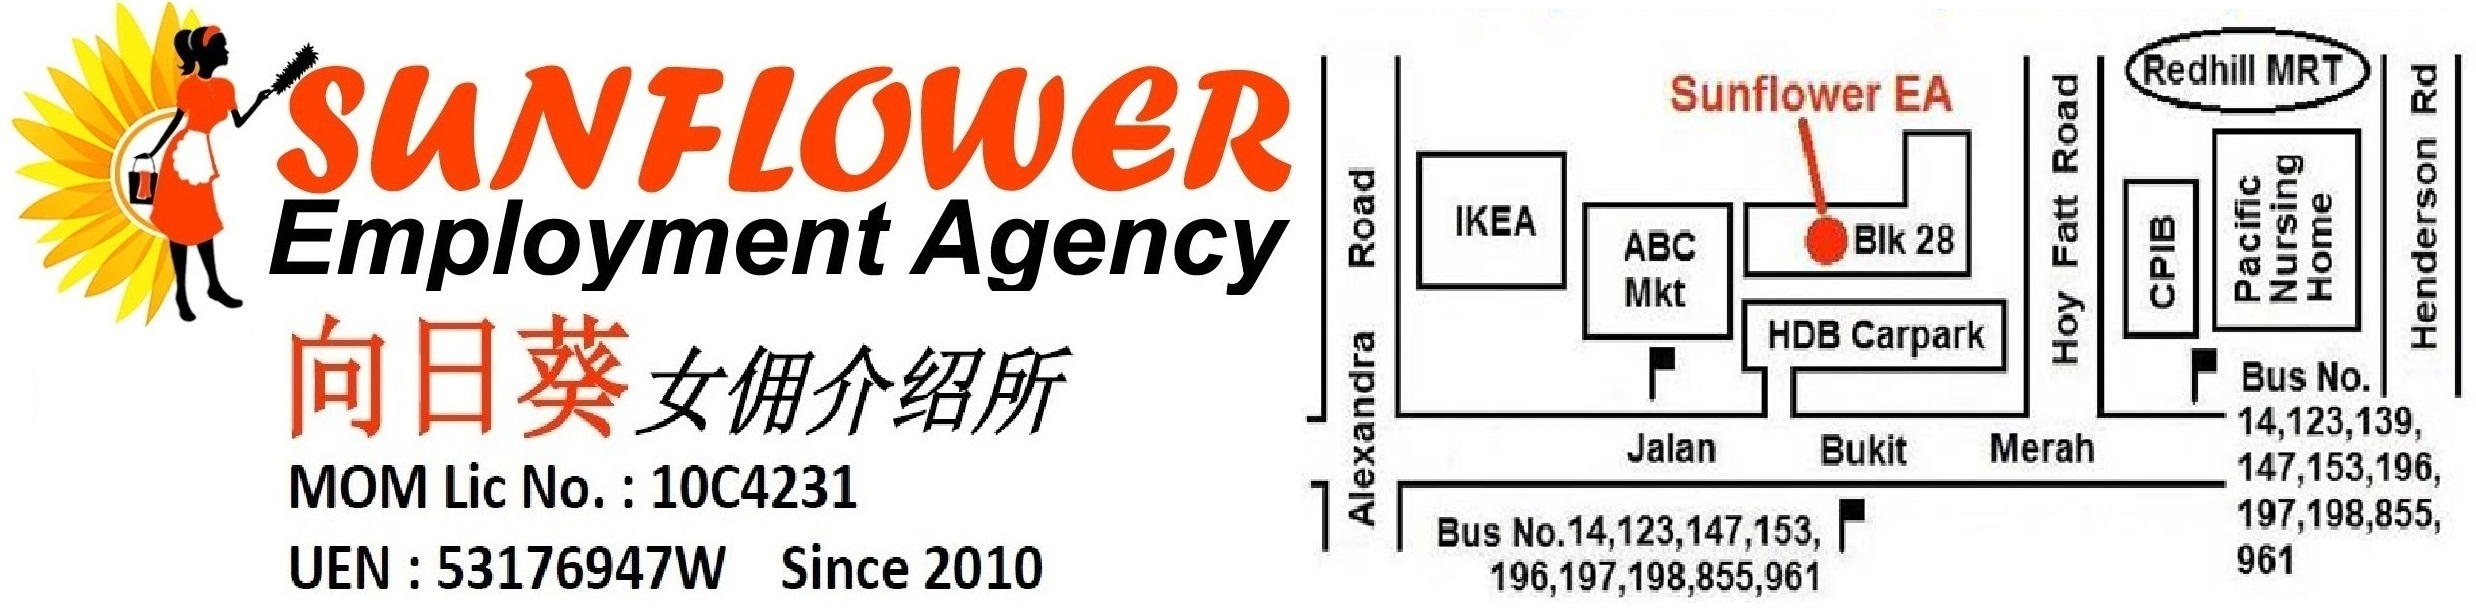 SUNFLOWER EMPLOYMENT AGENCY